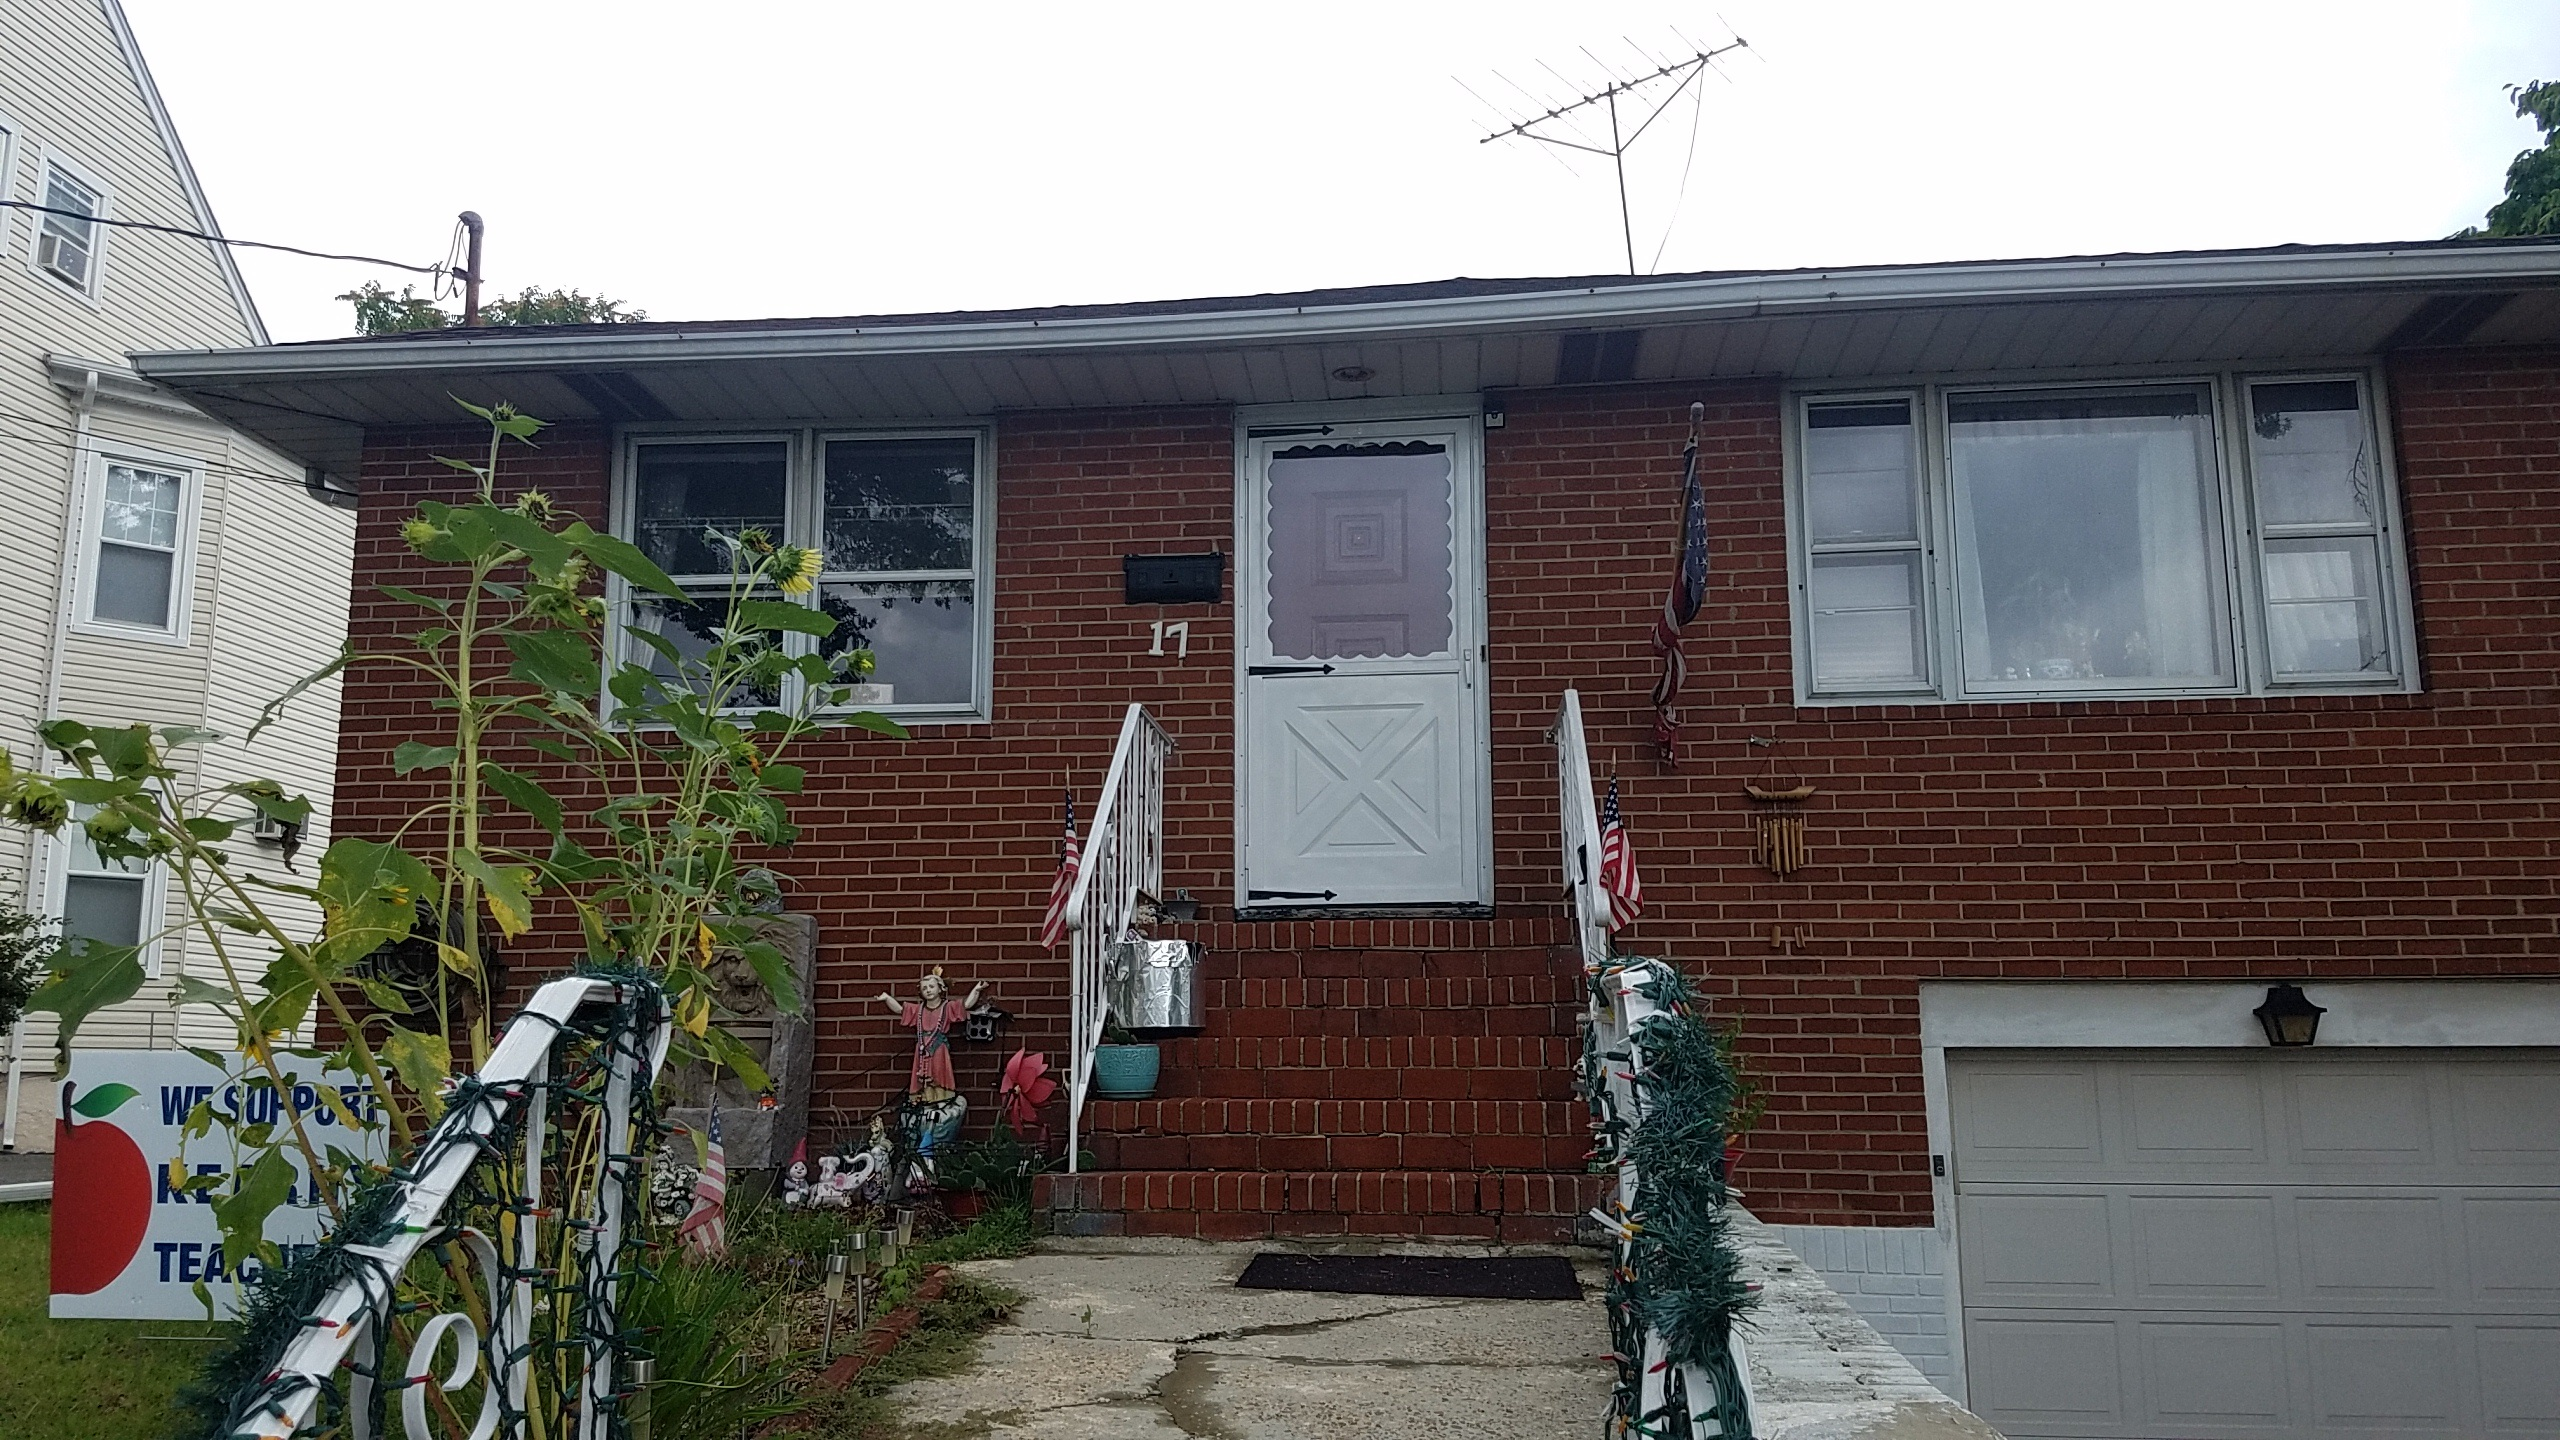 SOLD- 17 STUYVESANT AVE, KEARNY, NJ 07032 – $260,000